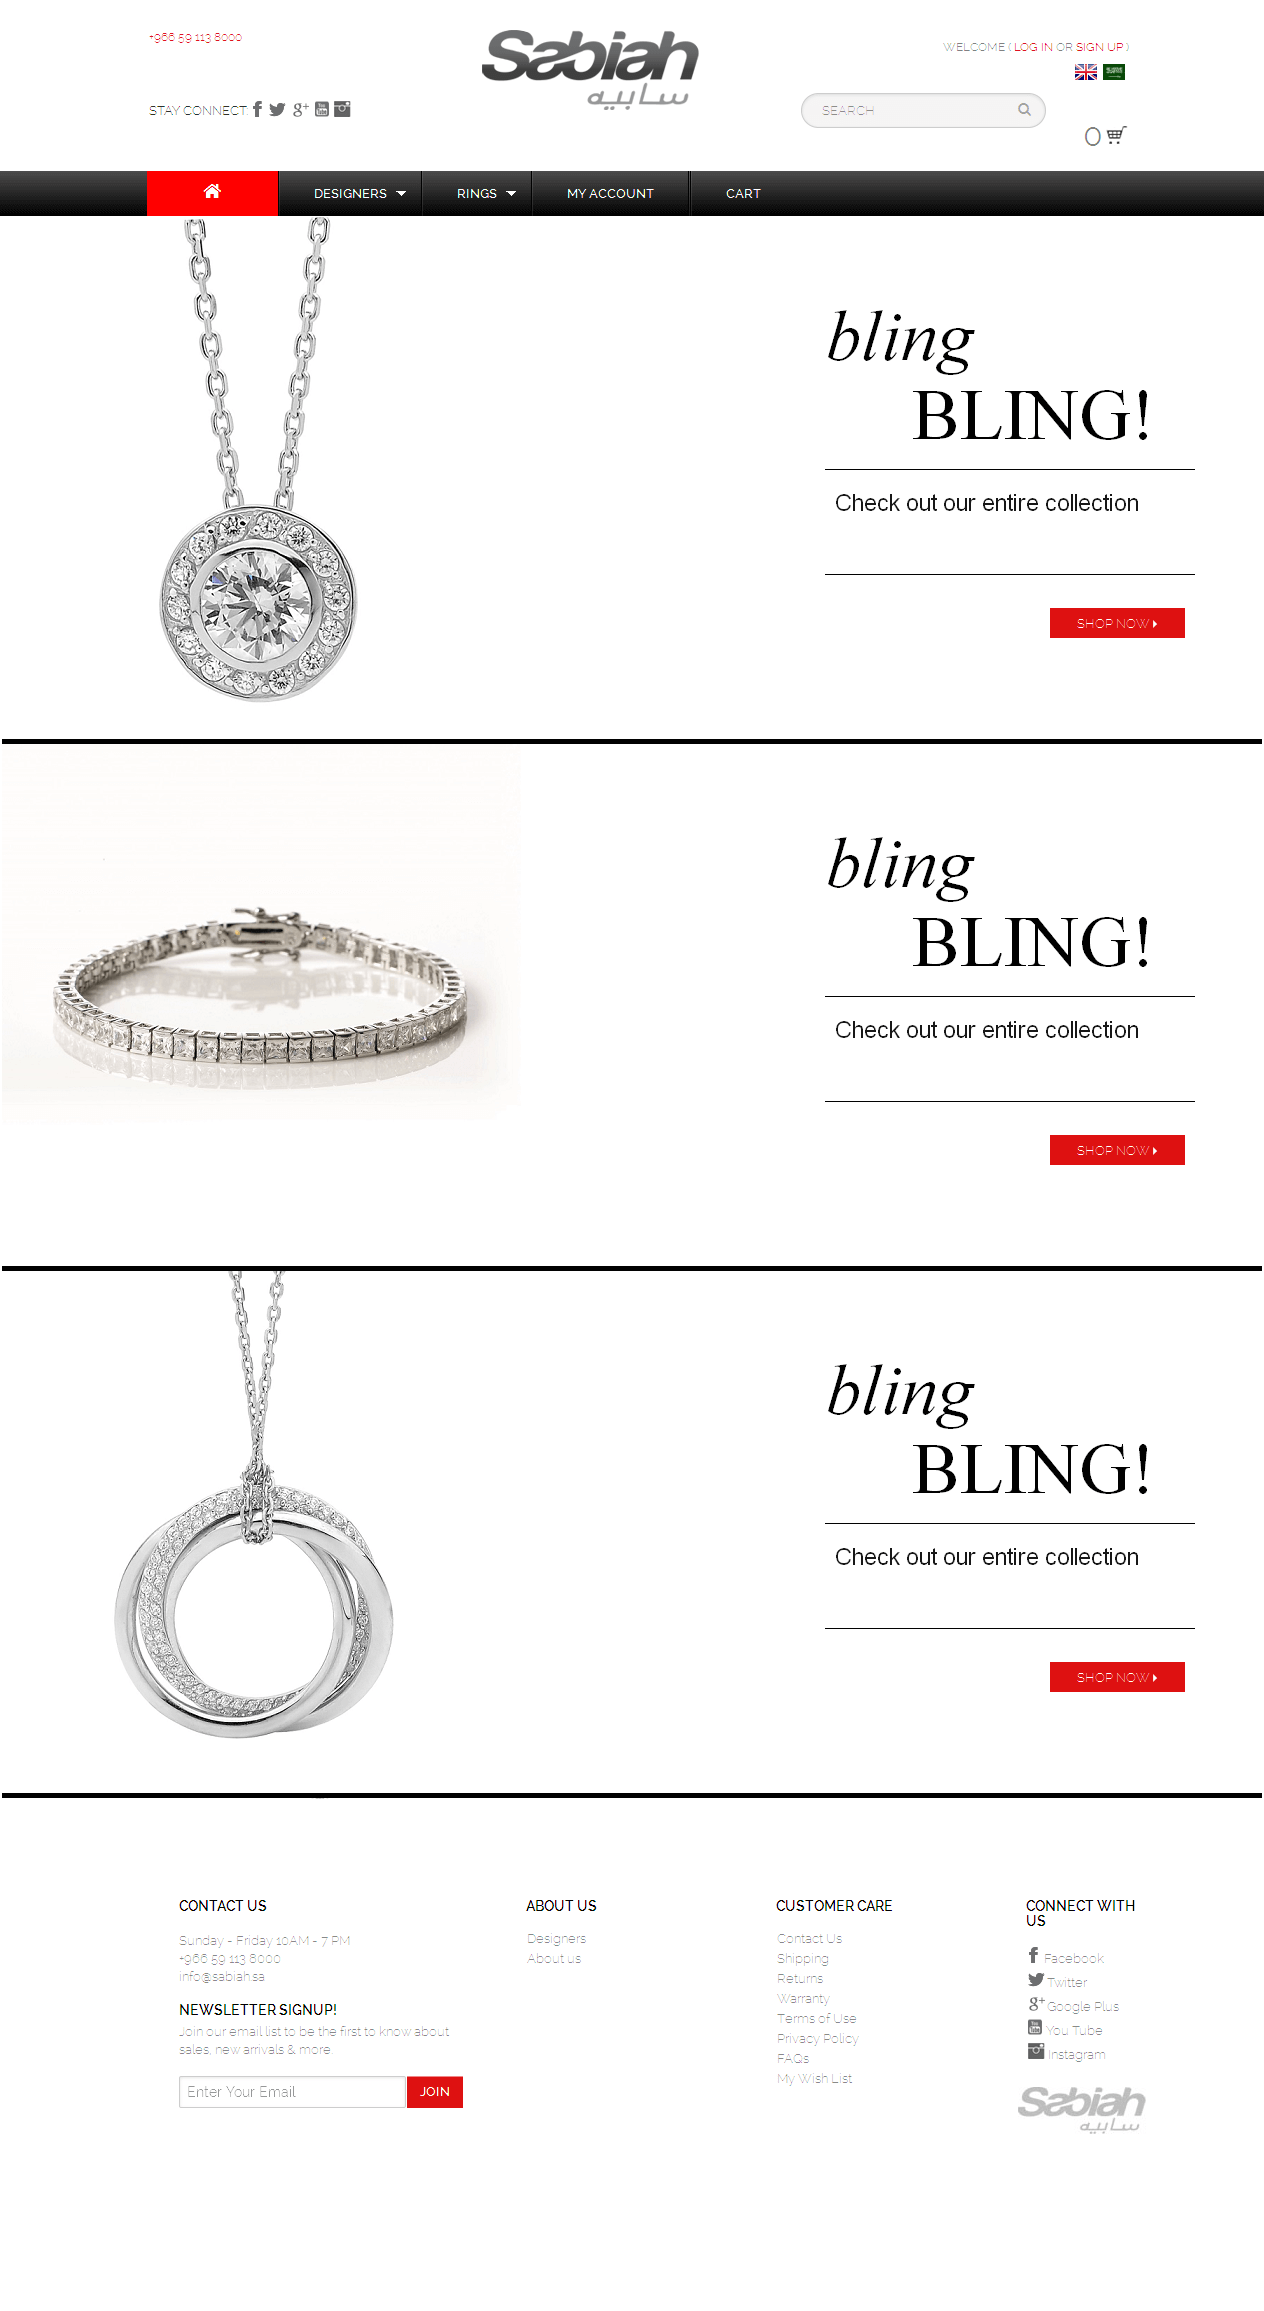 Website for Consumer 'Sabiah' Using PHP – Sell Women Jewelry Online